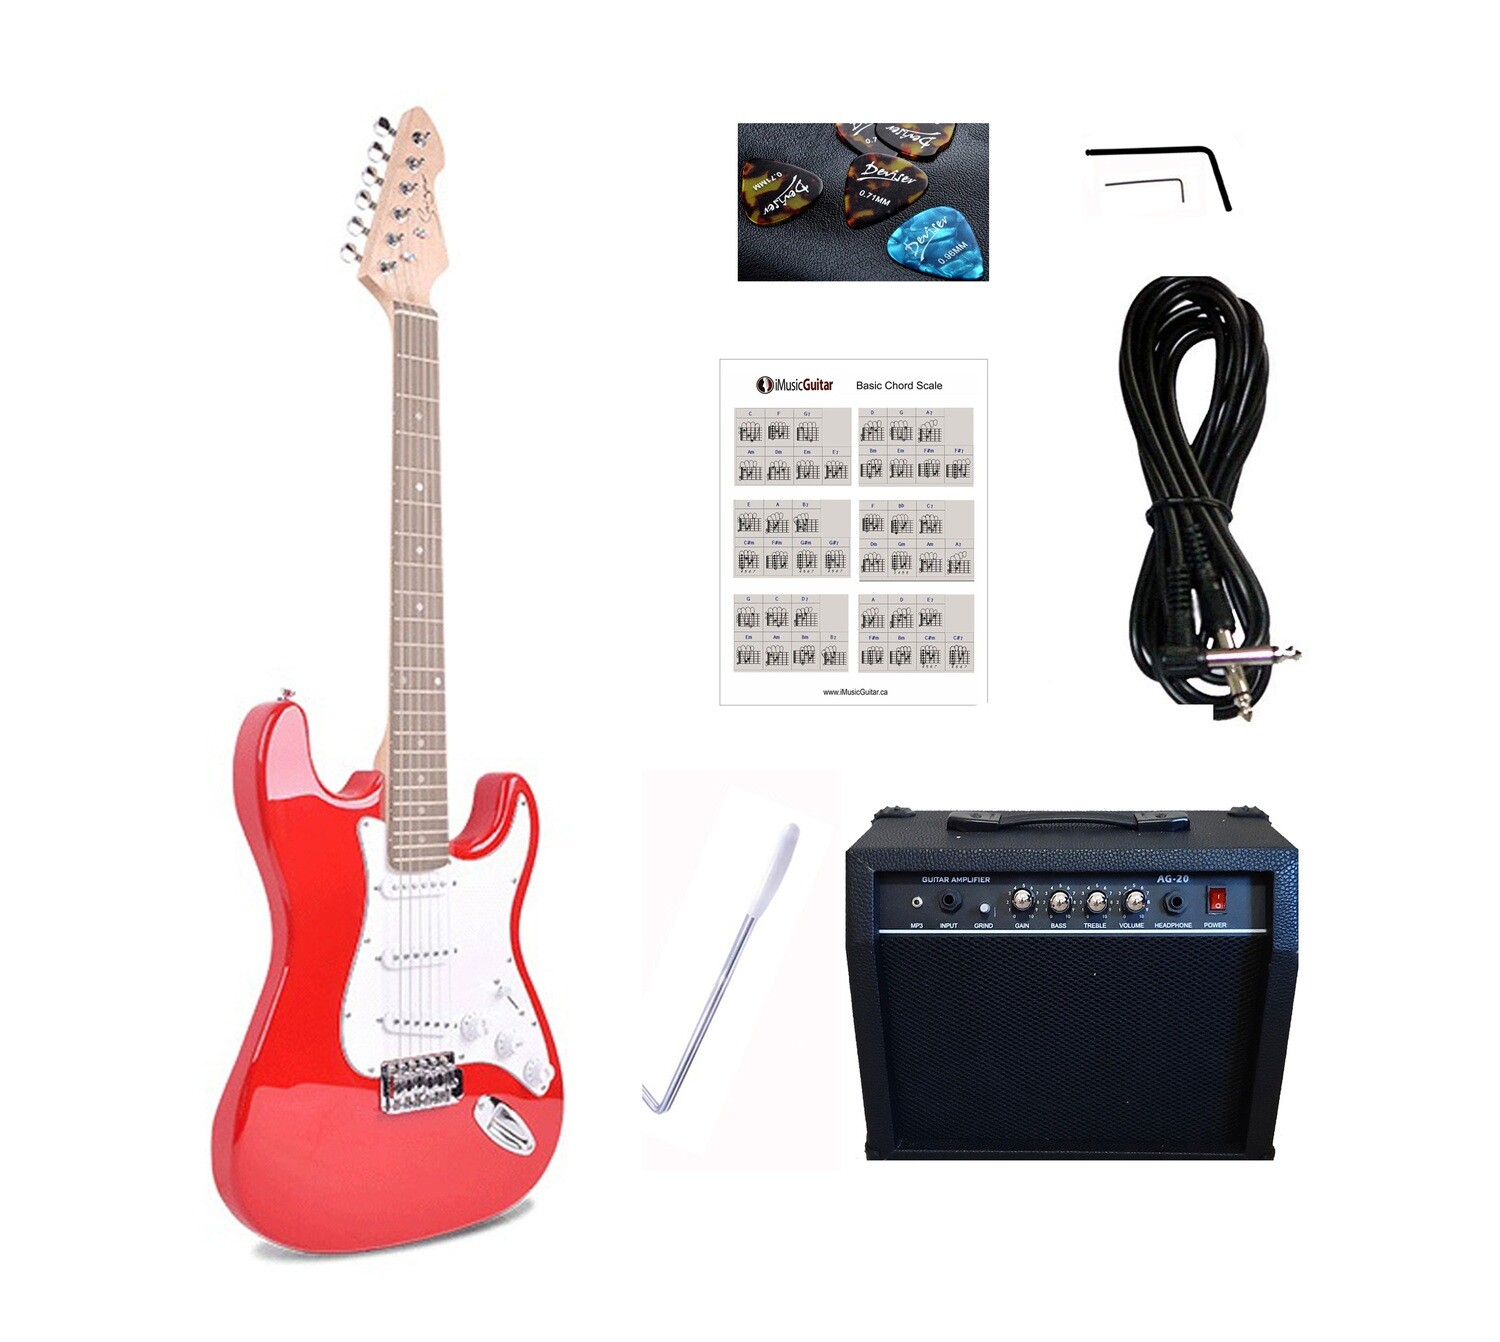 Electric Guitar 20W amp Package for beginners Red iMEG28320